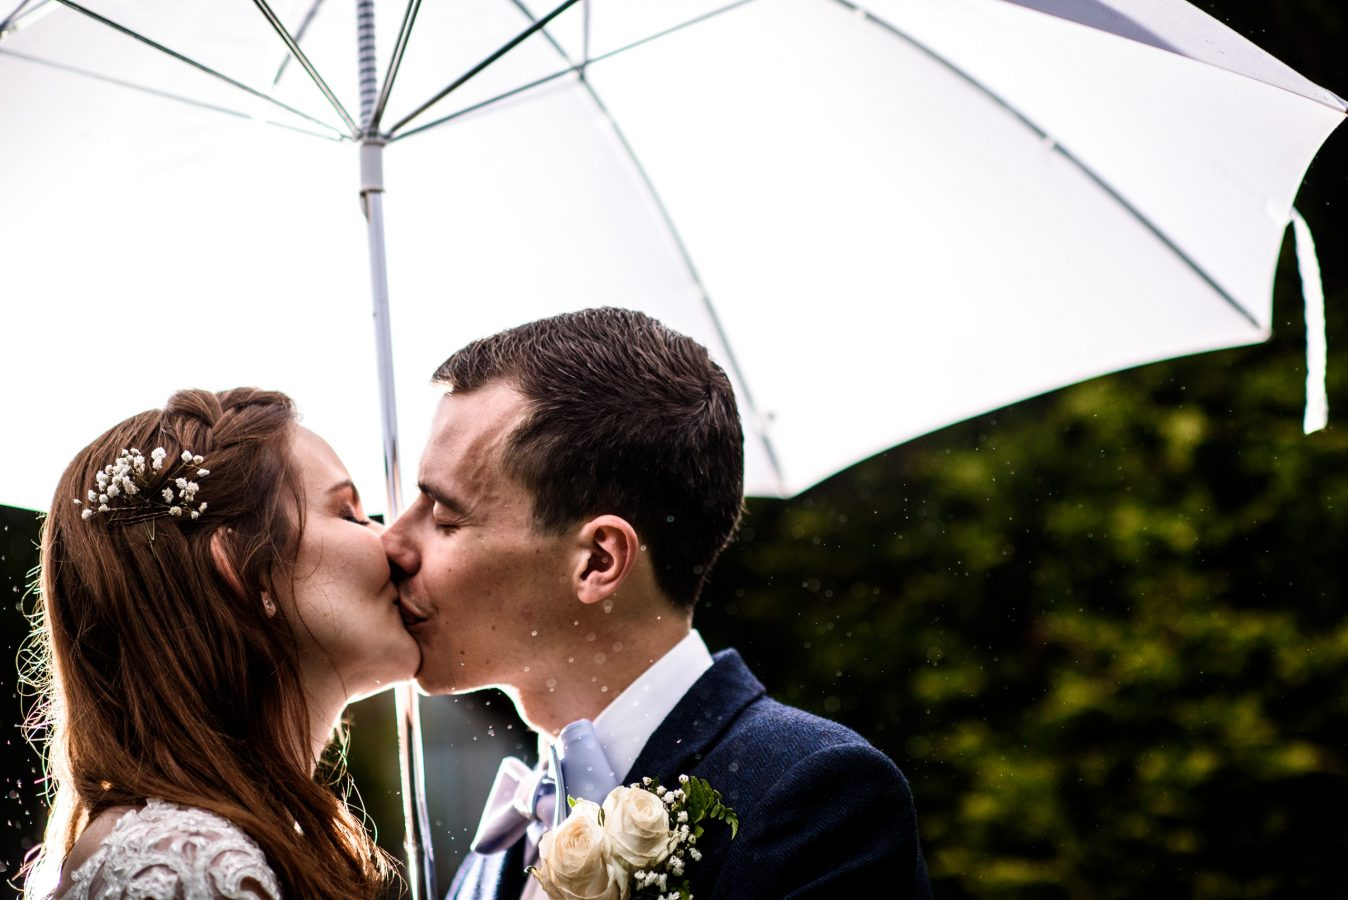 Bride-and-groom-kiss-under-umbrella-dunkenhalgh-hotel